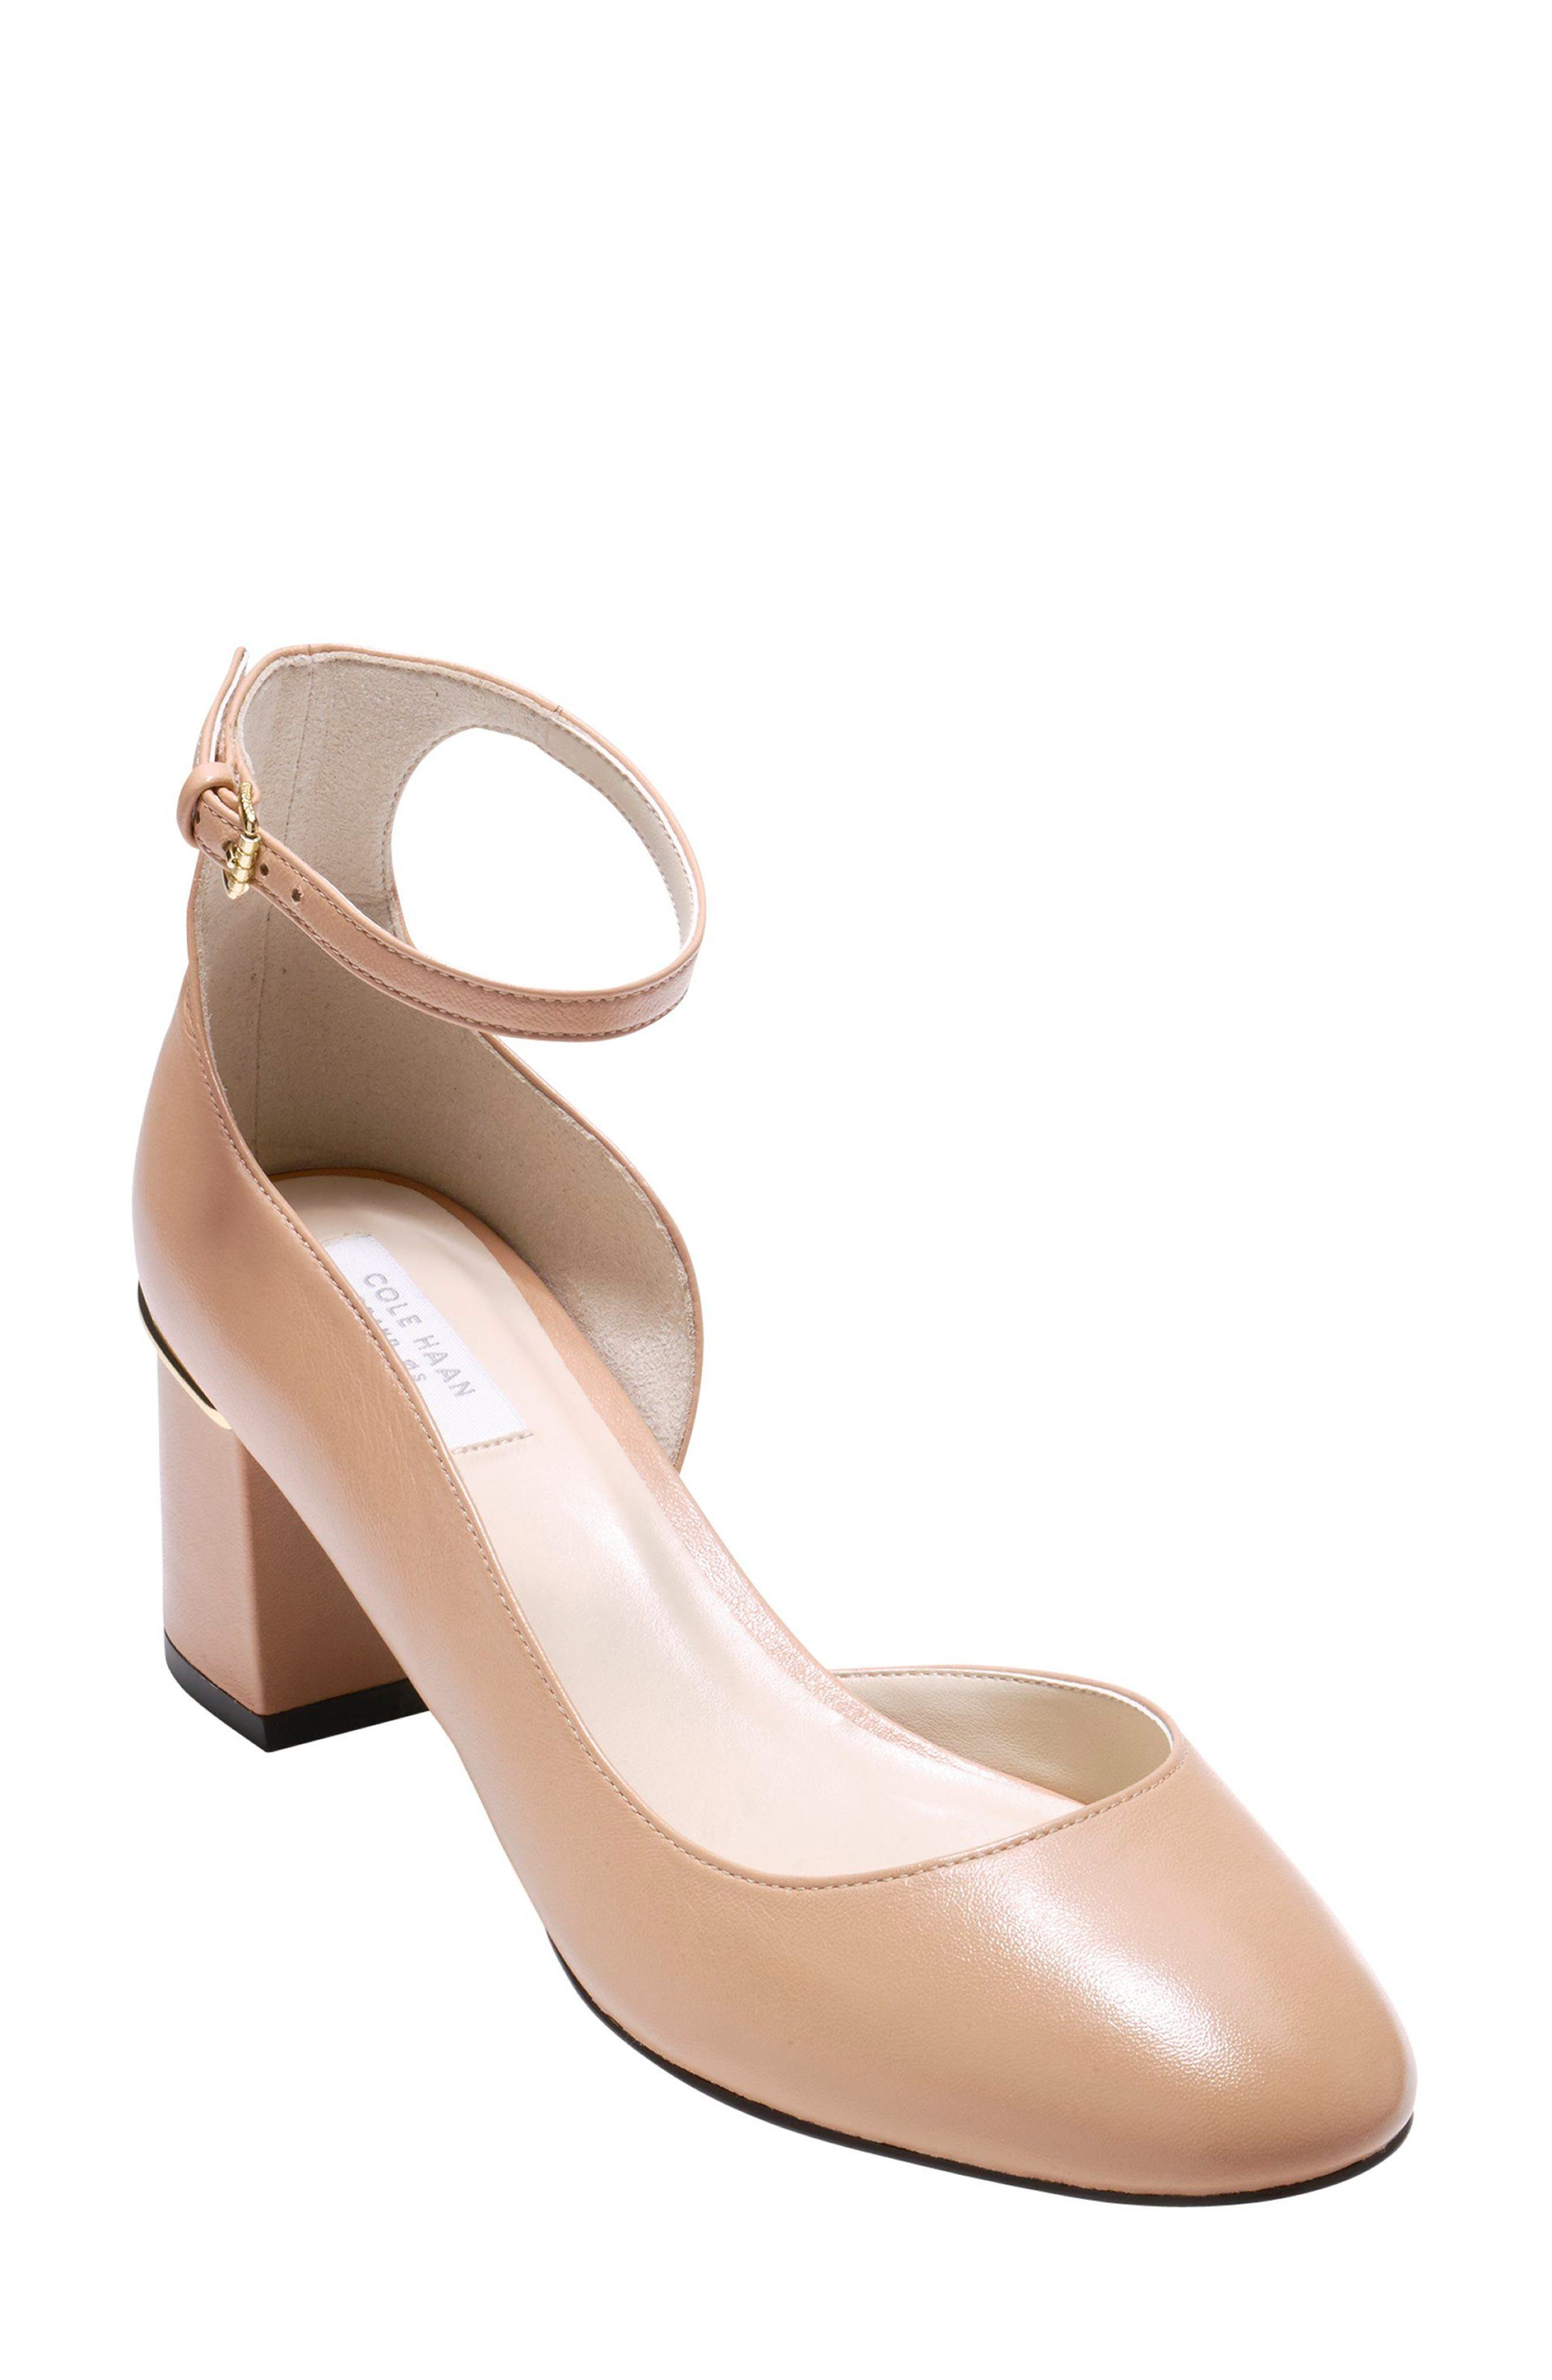 Warner Ankle Strap Pump,                             Main thumbnail 1, color,                             NUDE LEATHER